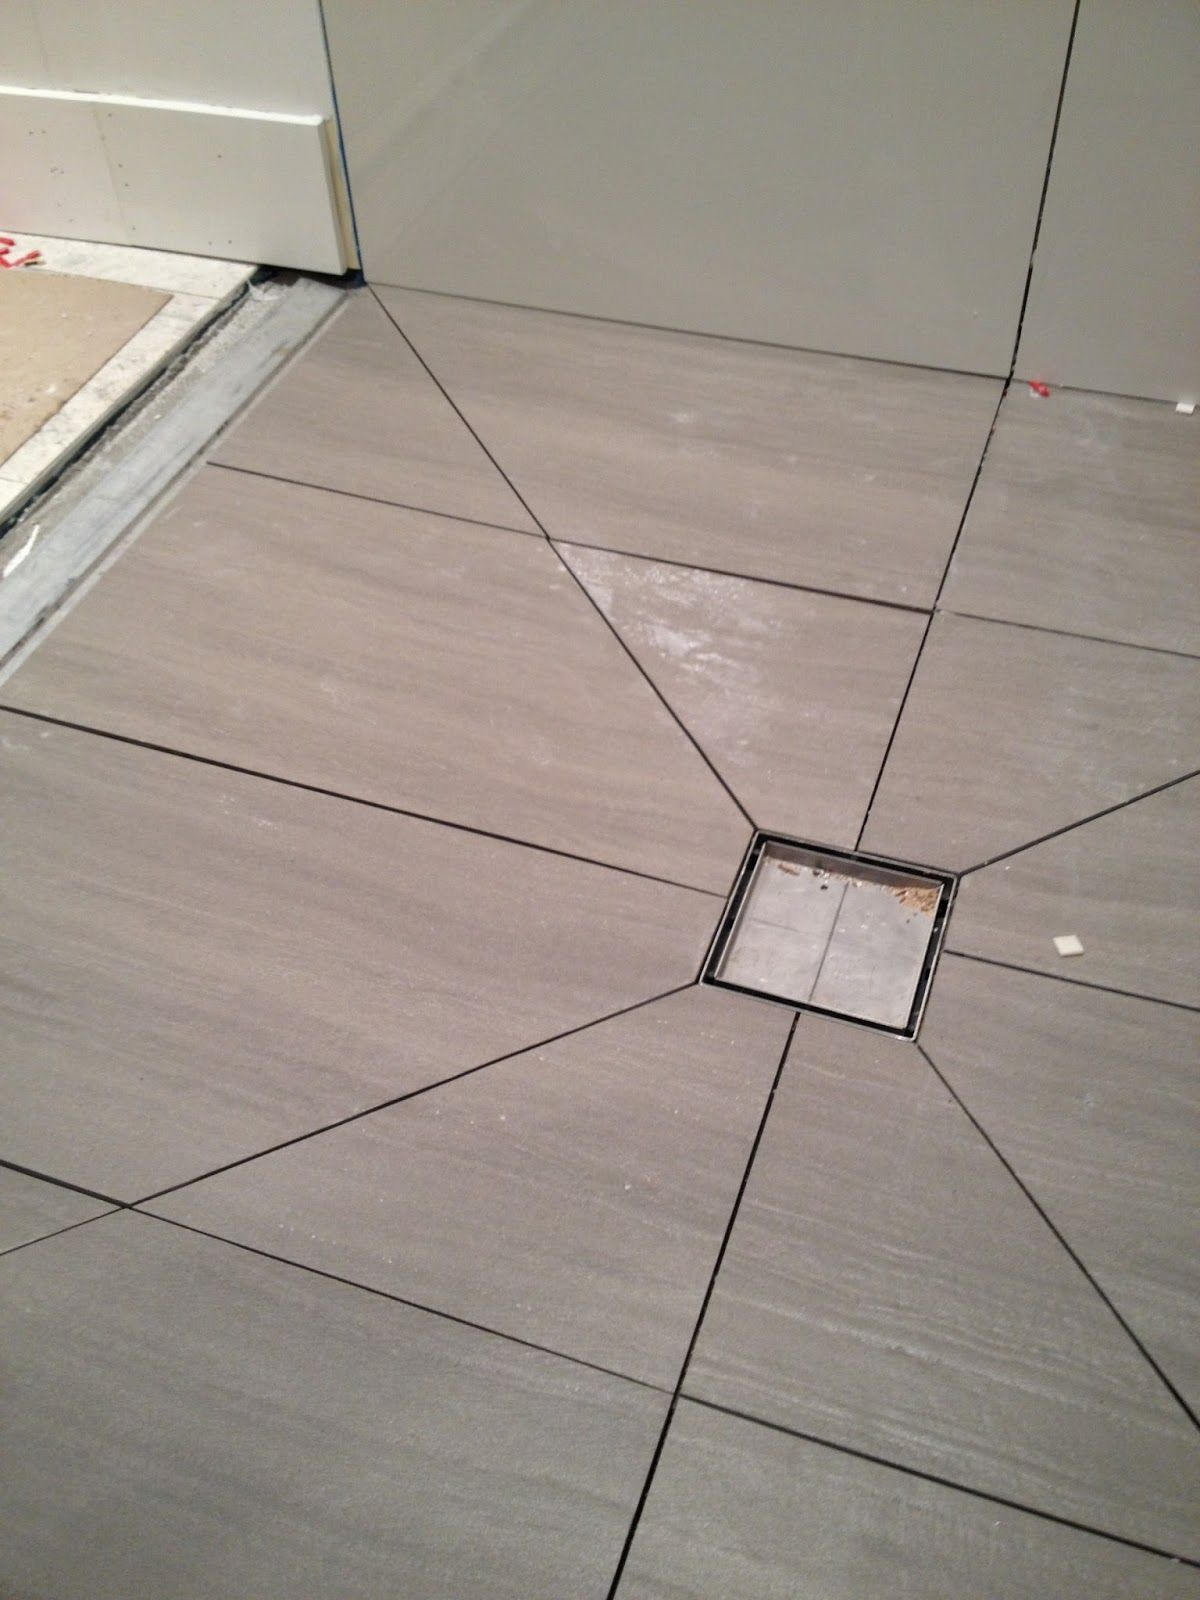 Diagonal Tile Cuts To Slope Shower Floor